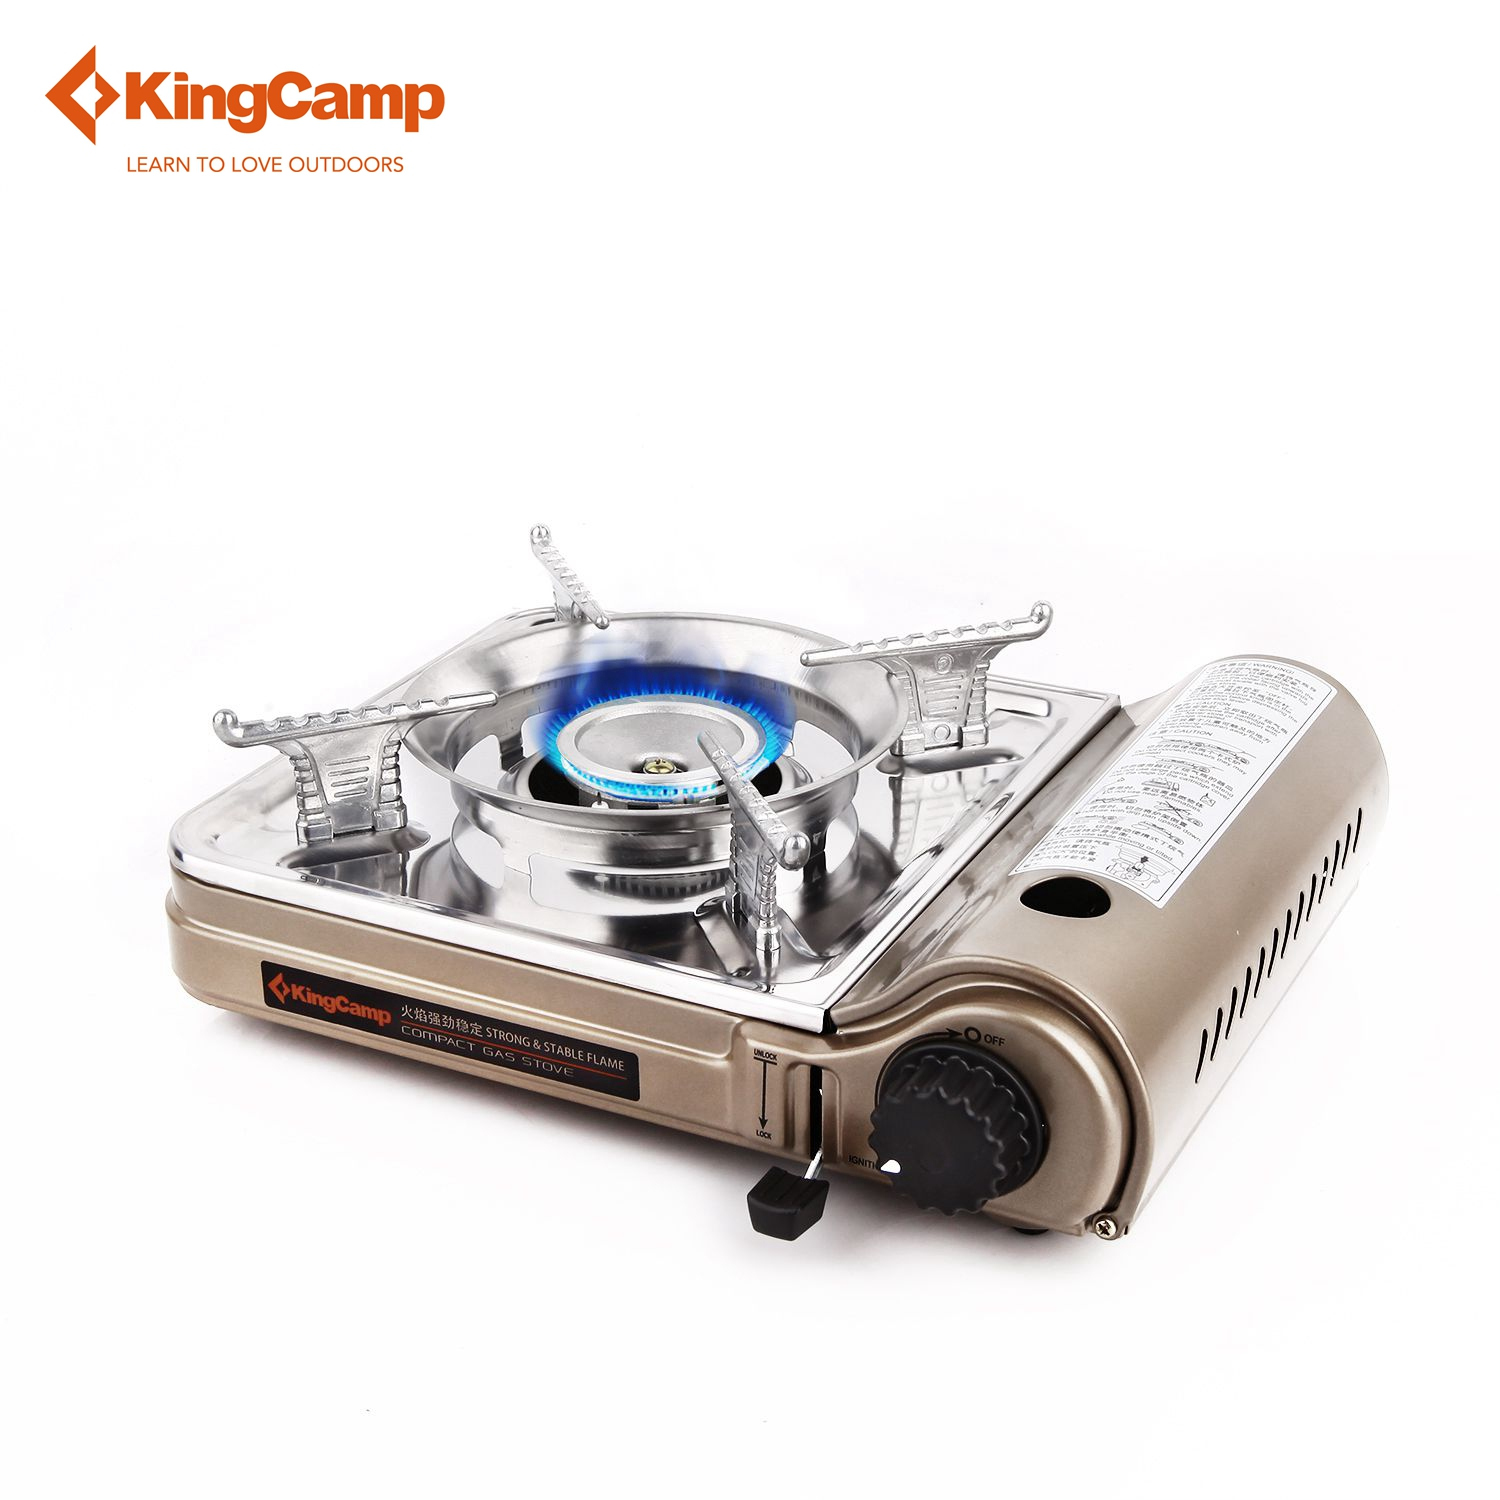 KingCamp Portable font b Camping b font Stove Outdoor Gas Stove for Hiking Trekking font b